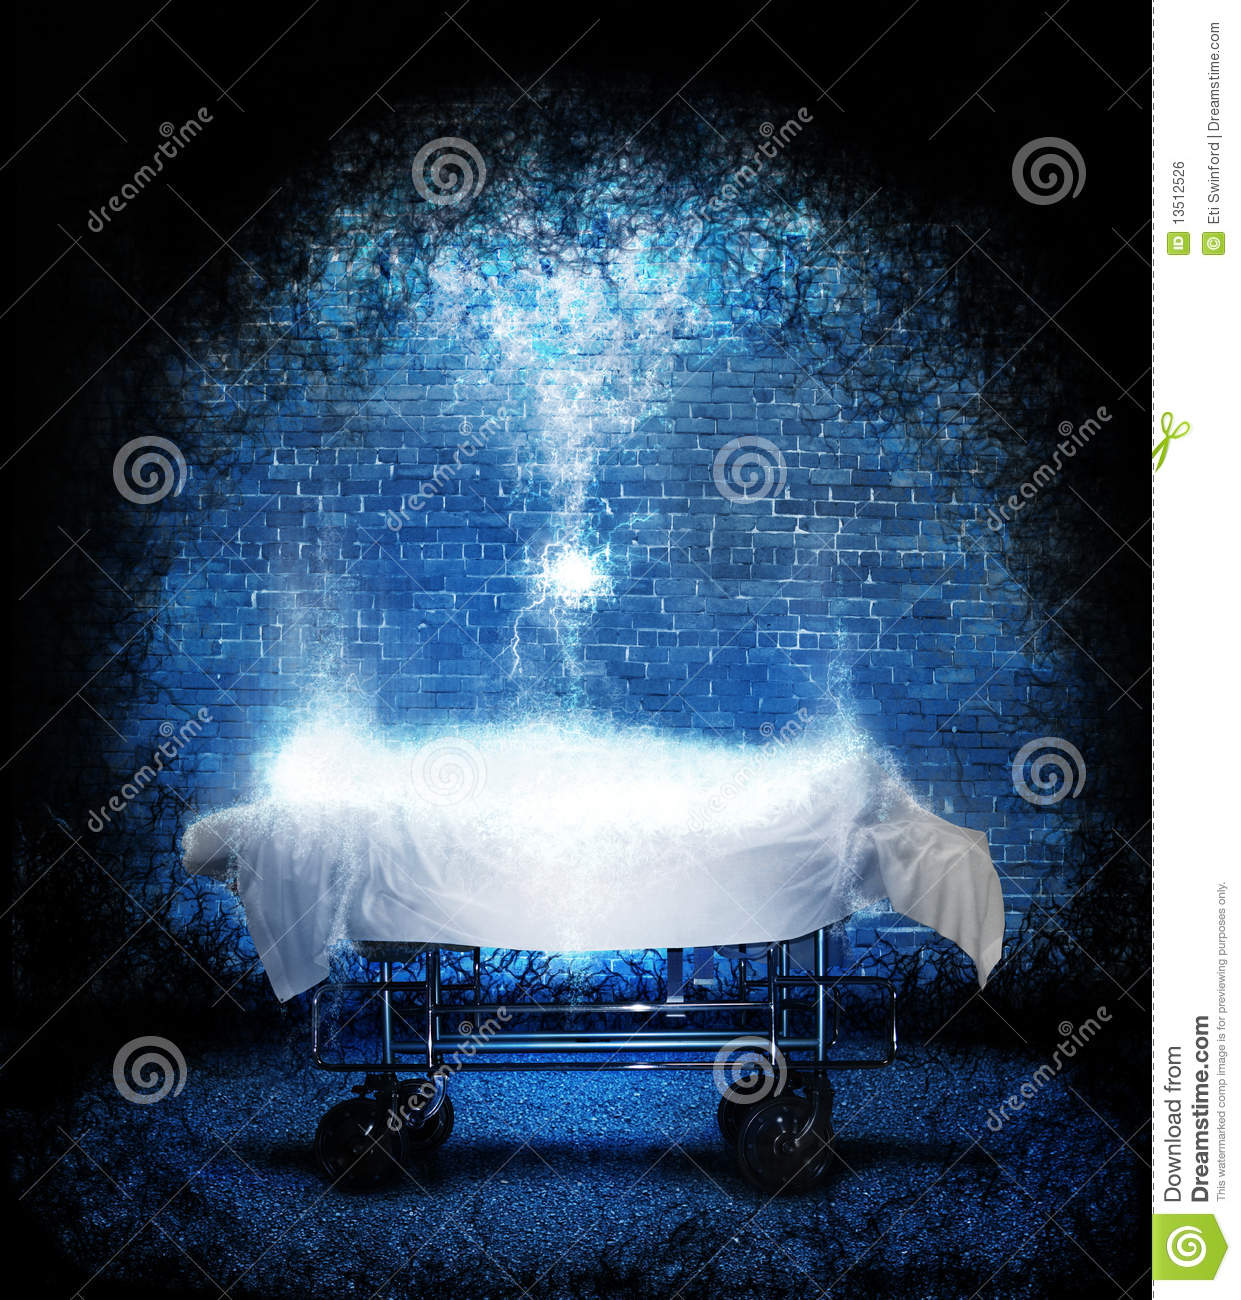 Life After Death Royalty Free Stock Image Image 13512526